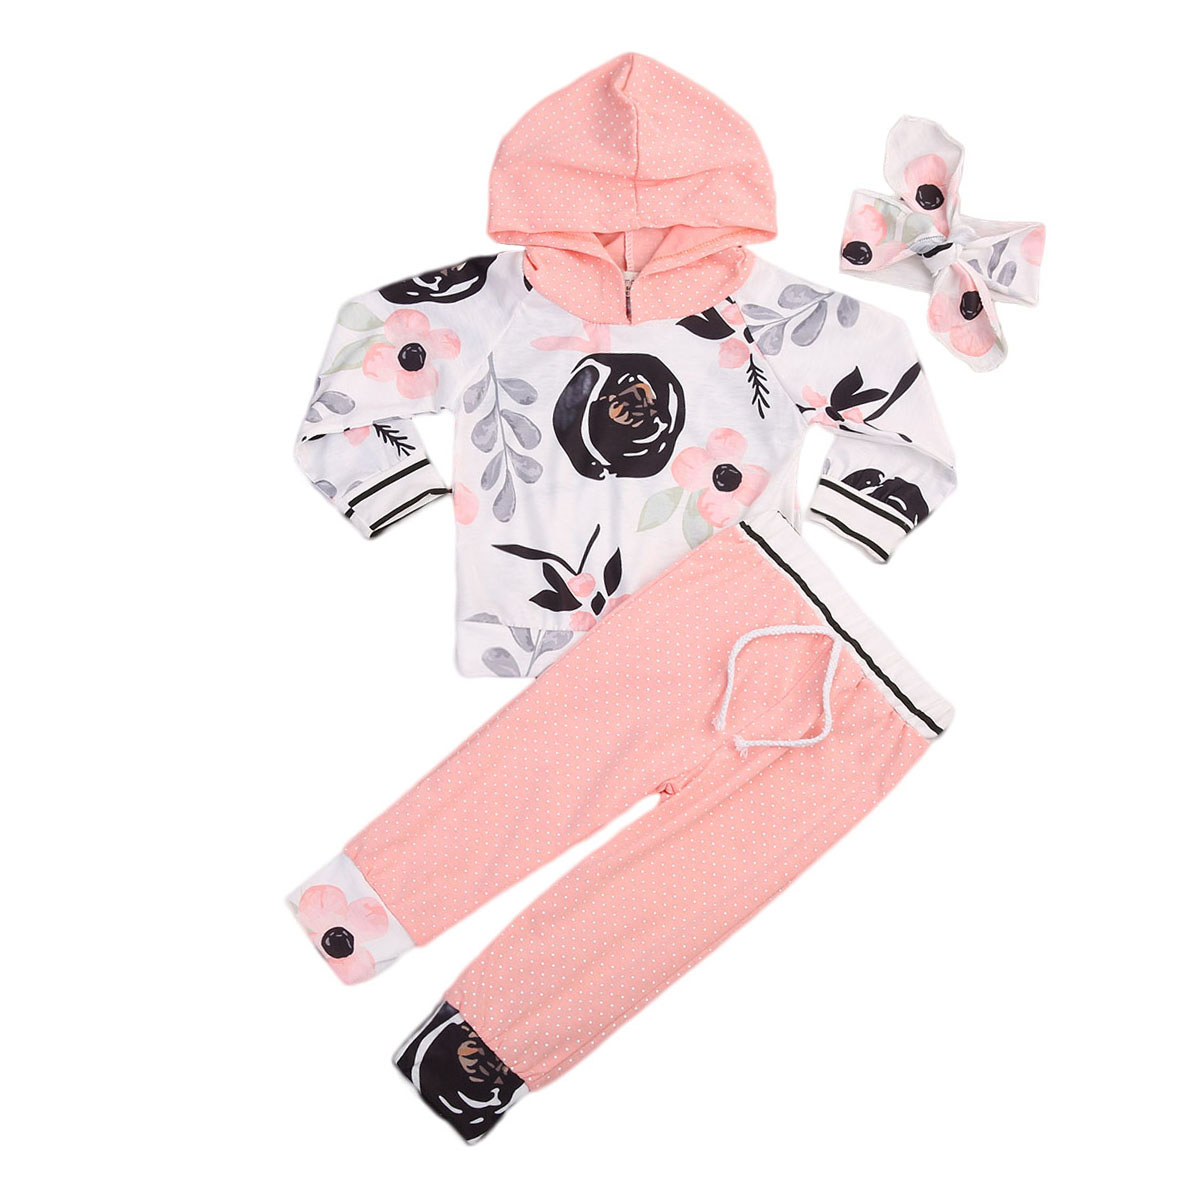 2017 New Brand 3pcs Toddler Infant Newborn Baby Boy Girl Floral T-shirt Tops Pants Headband Outfits Set Casual Clothes 3pcs set newborn infant baby boy girl clothes 2017 summer short sleeve leopard floral romper bodysuit headband shoes outfits